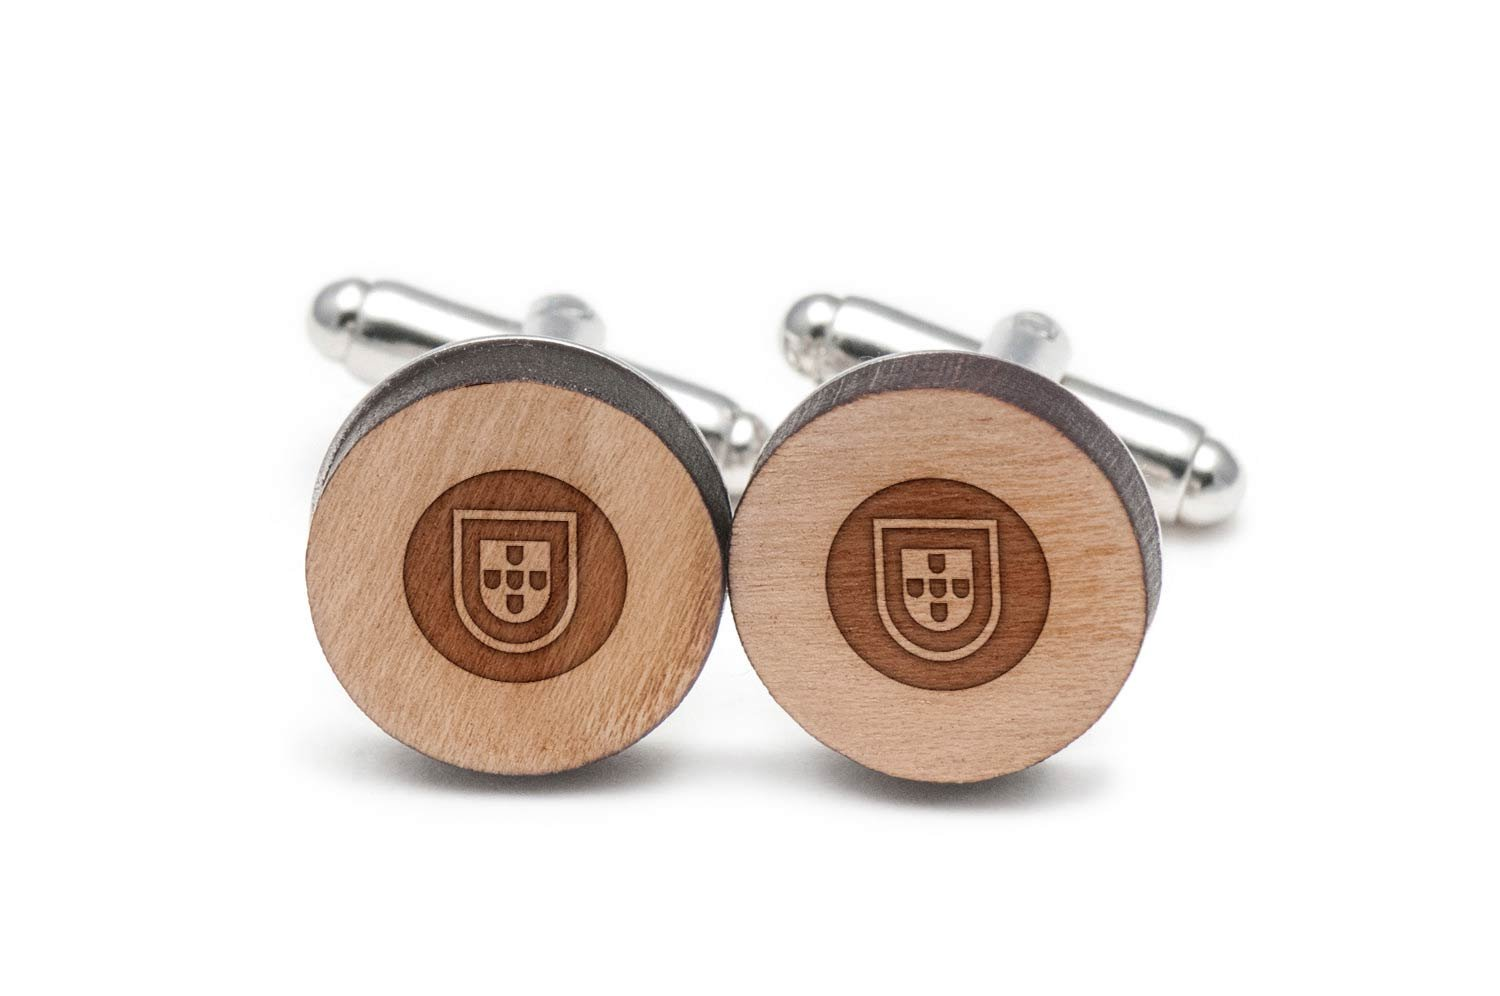 Portugal Coat Of Arms Cufflinks, Wood Cufflinks Hand Made In The Usa